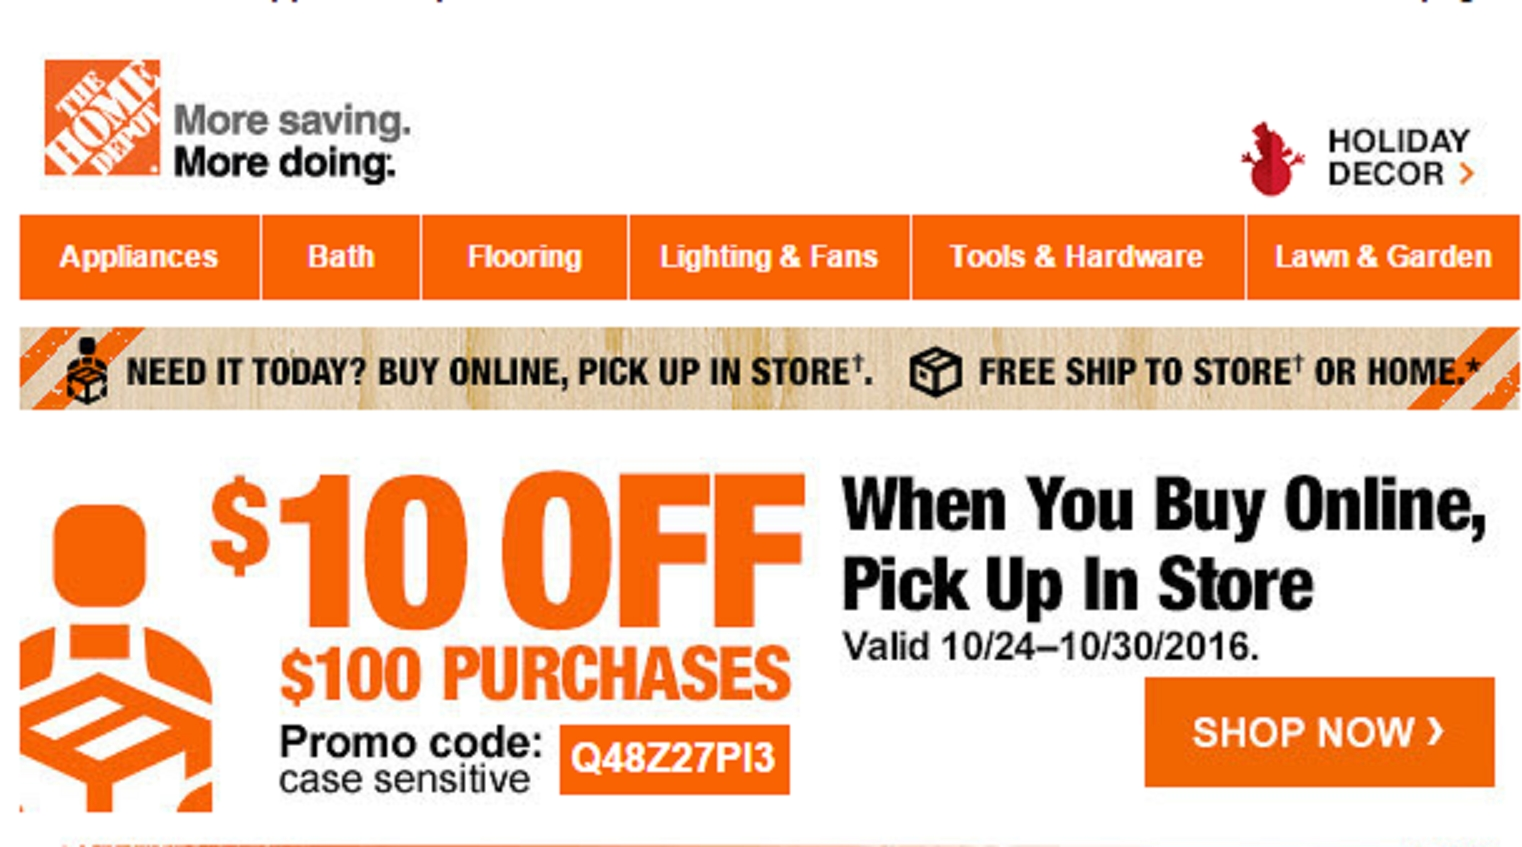 40 Off Home Depot Coupon Code Save 20 in Nov w Promo